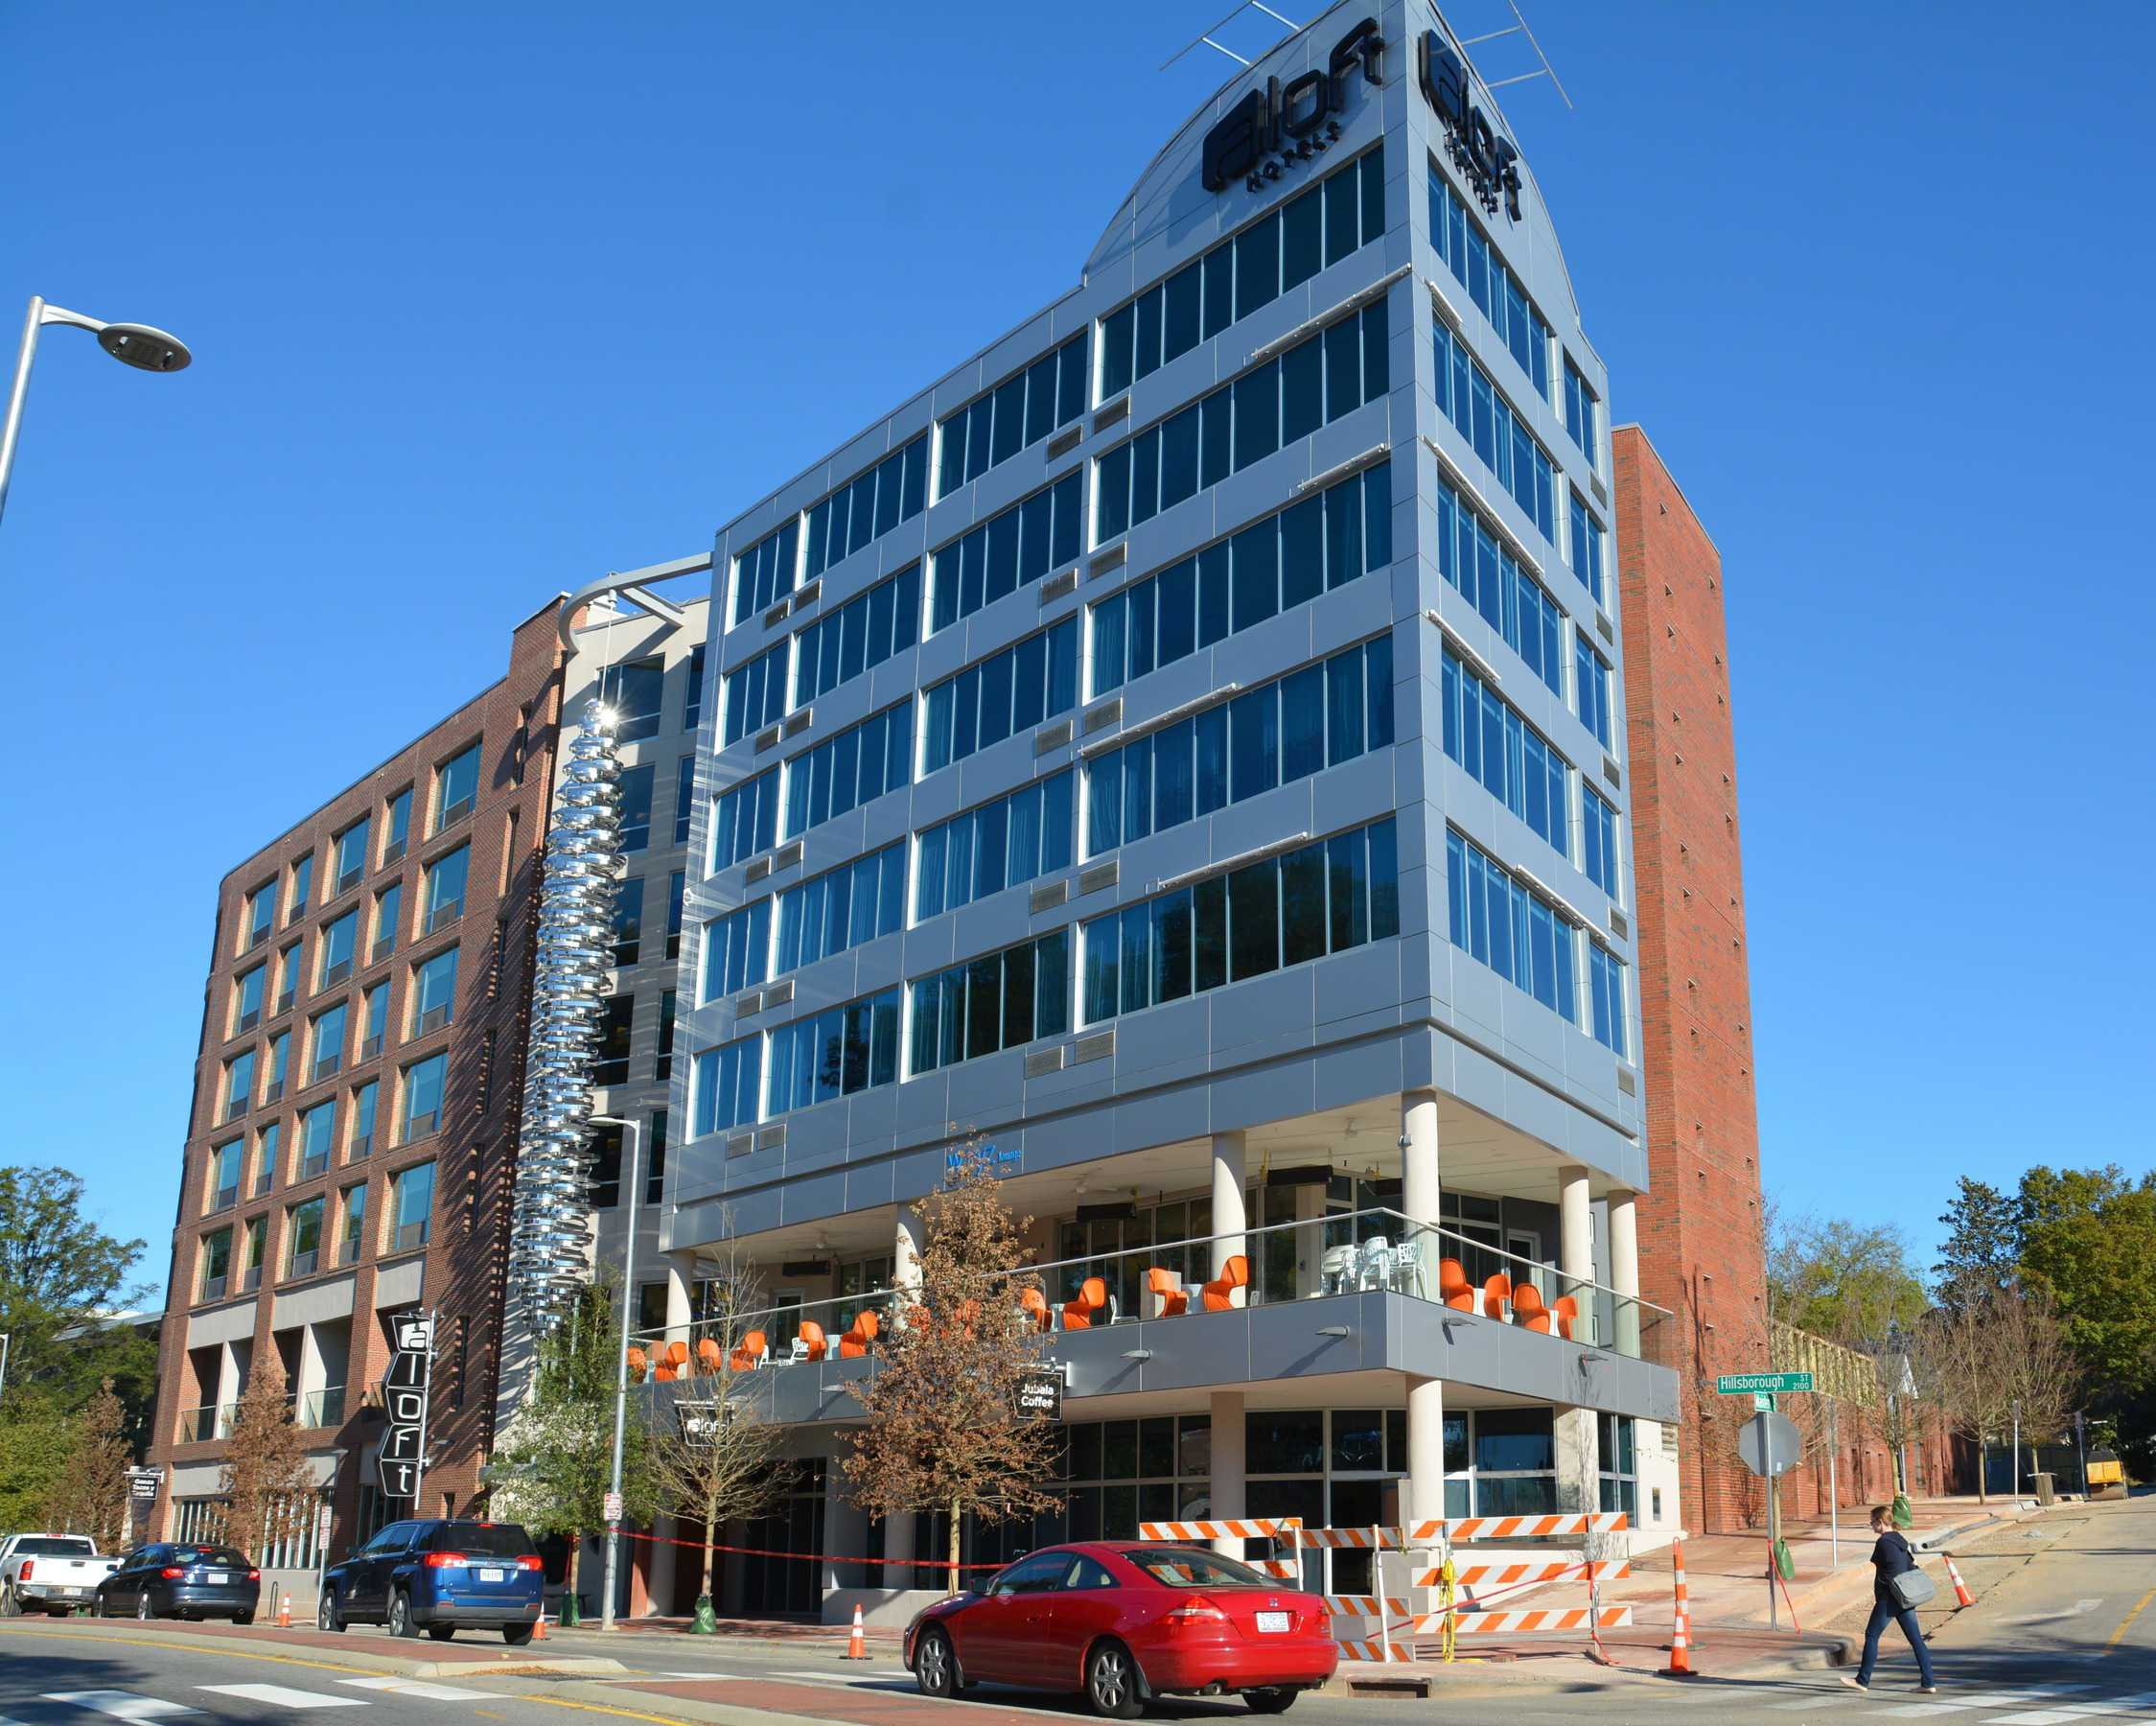 completed new hotel construction on Aloft Hotel Raleigh, NC - MEP Construction Contractors finished project front view